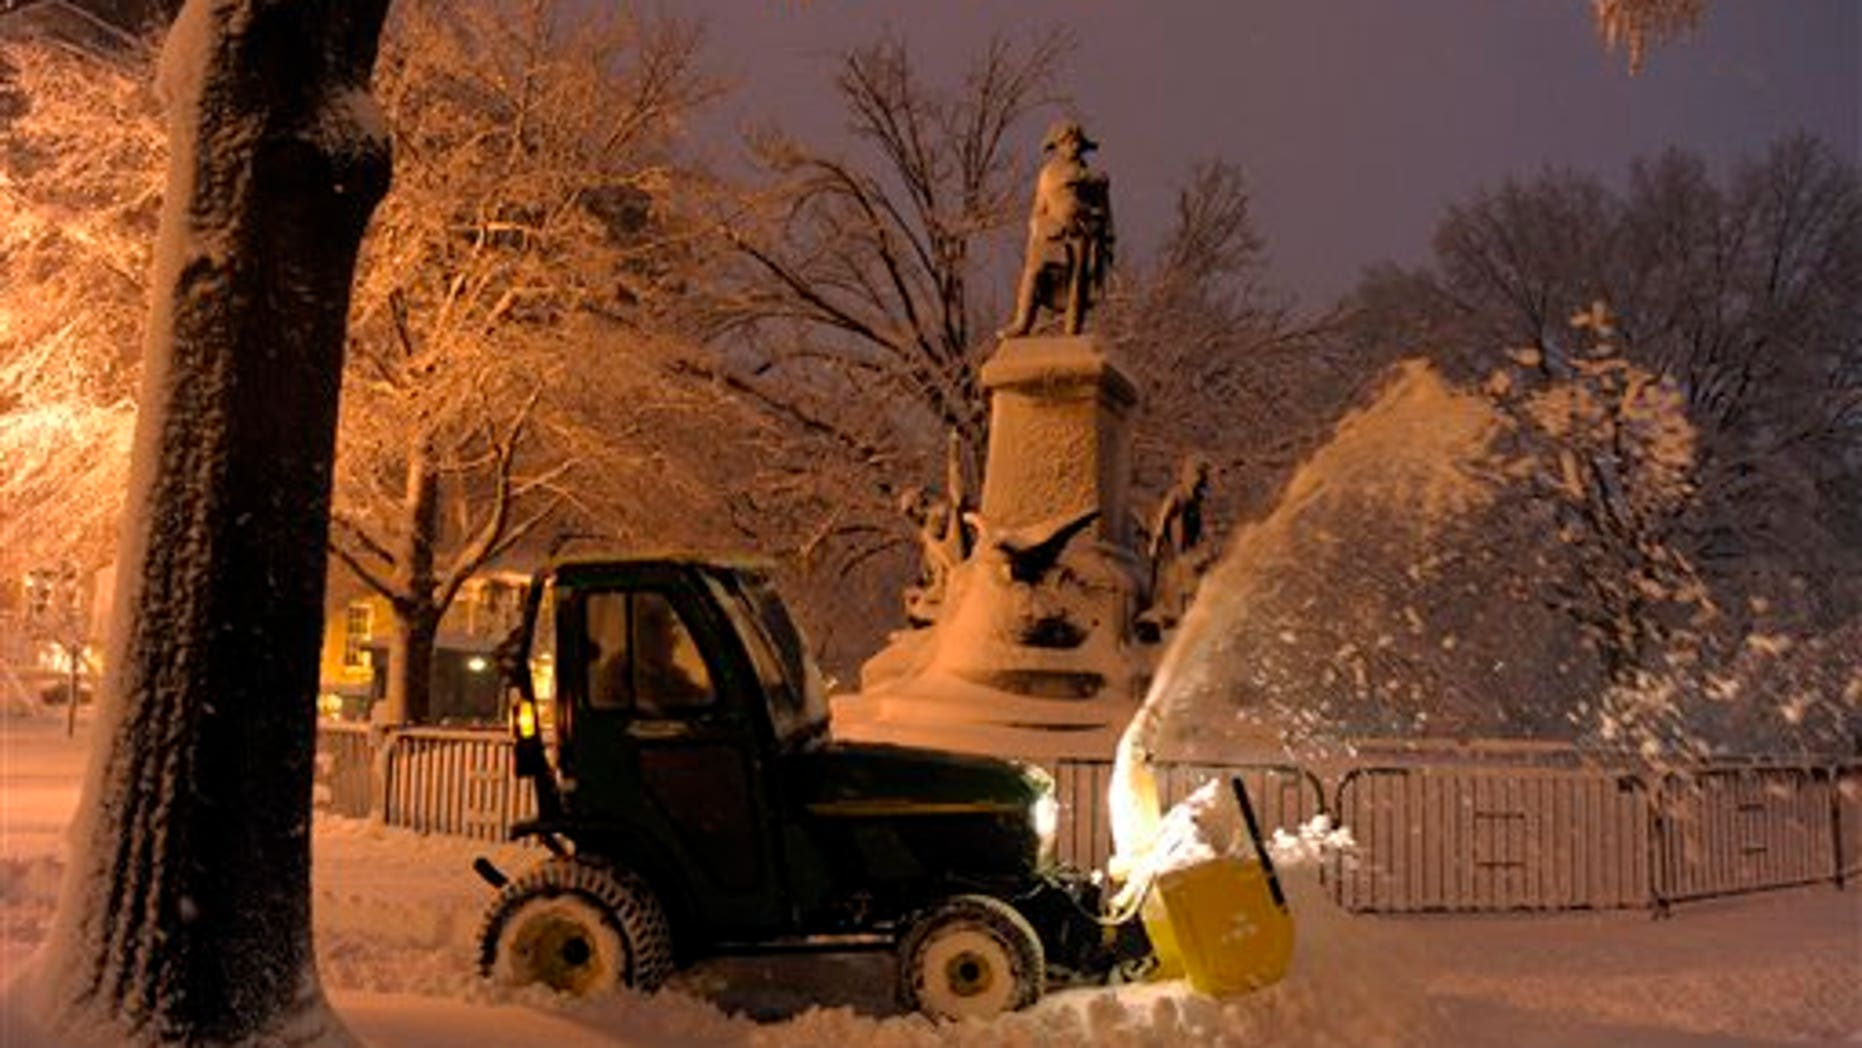 Feb. 6: A worker plows snow to clear a sidewalk in Lafayette Park, across from the White House in Washington.